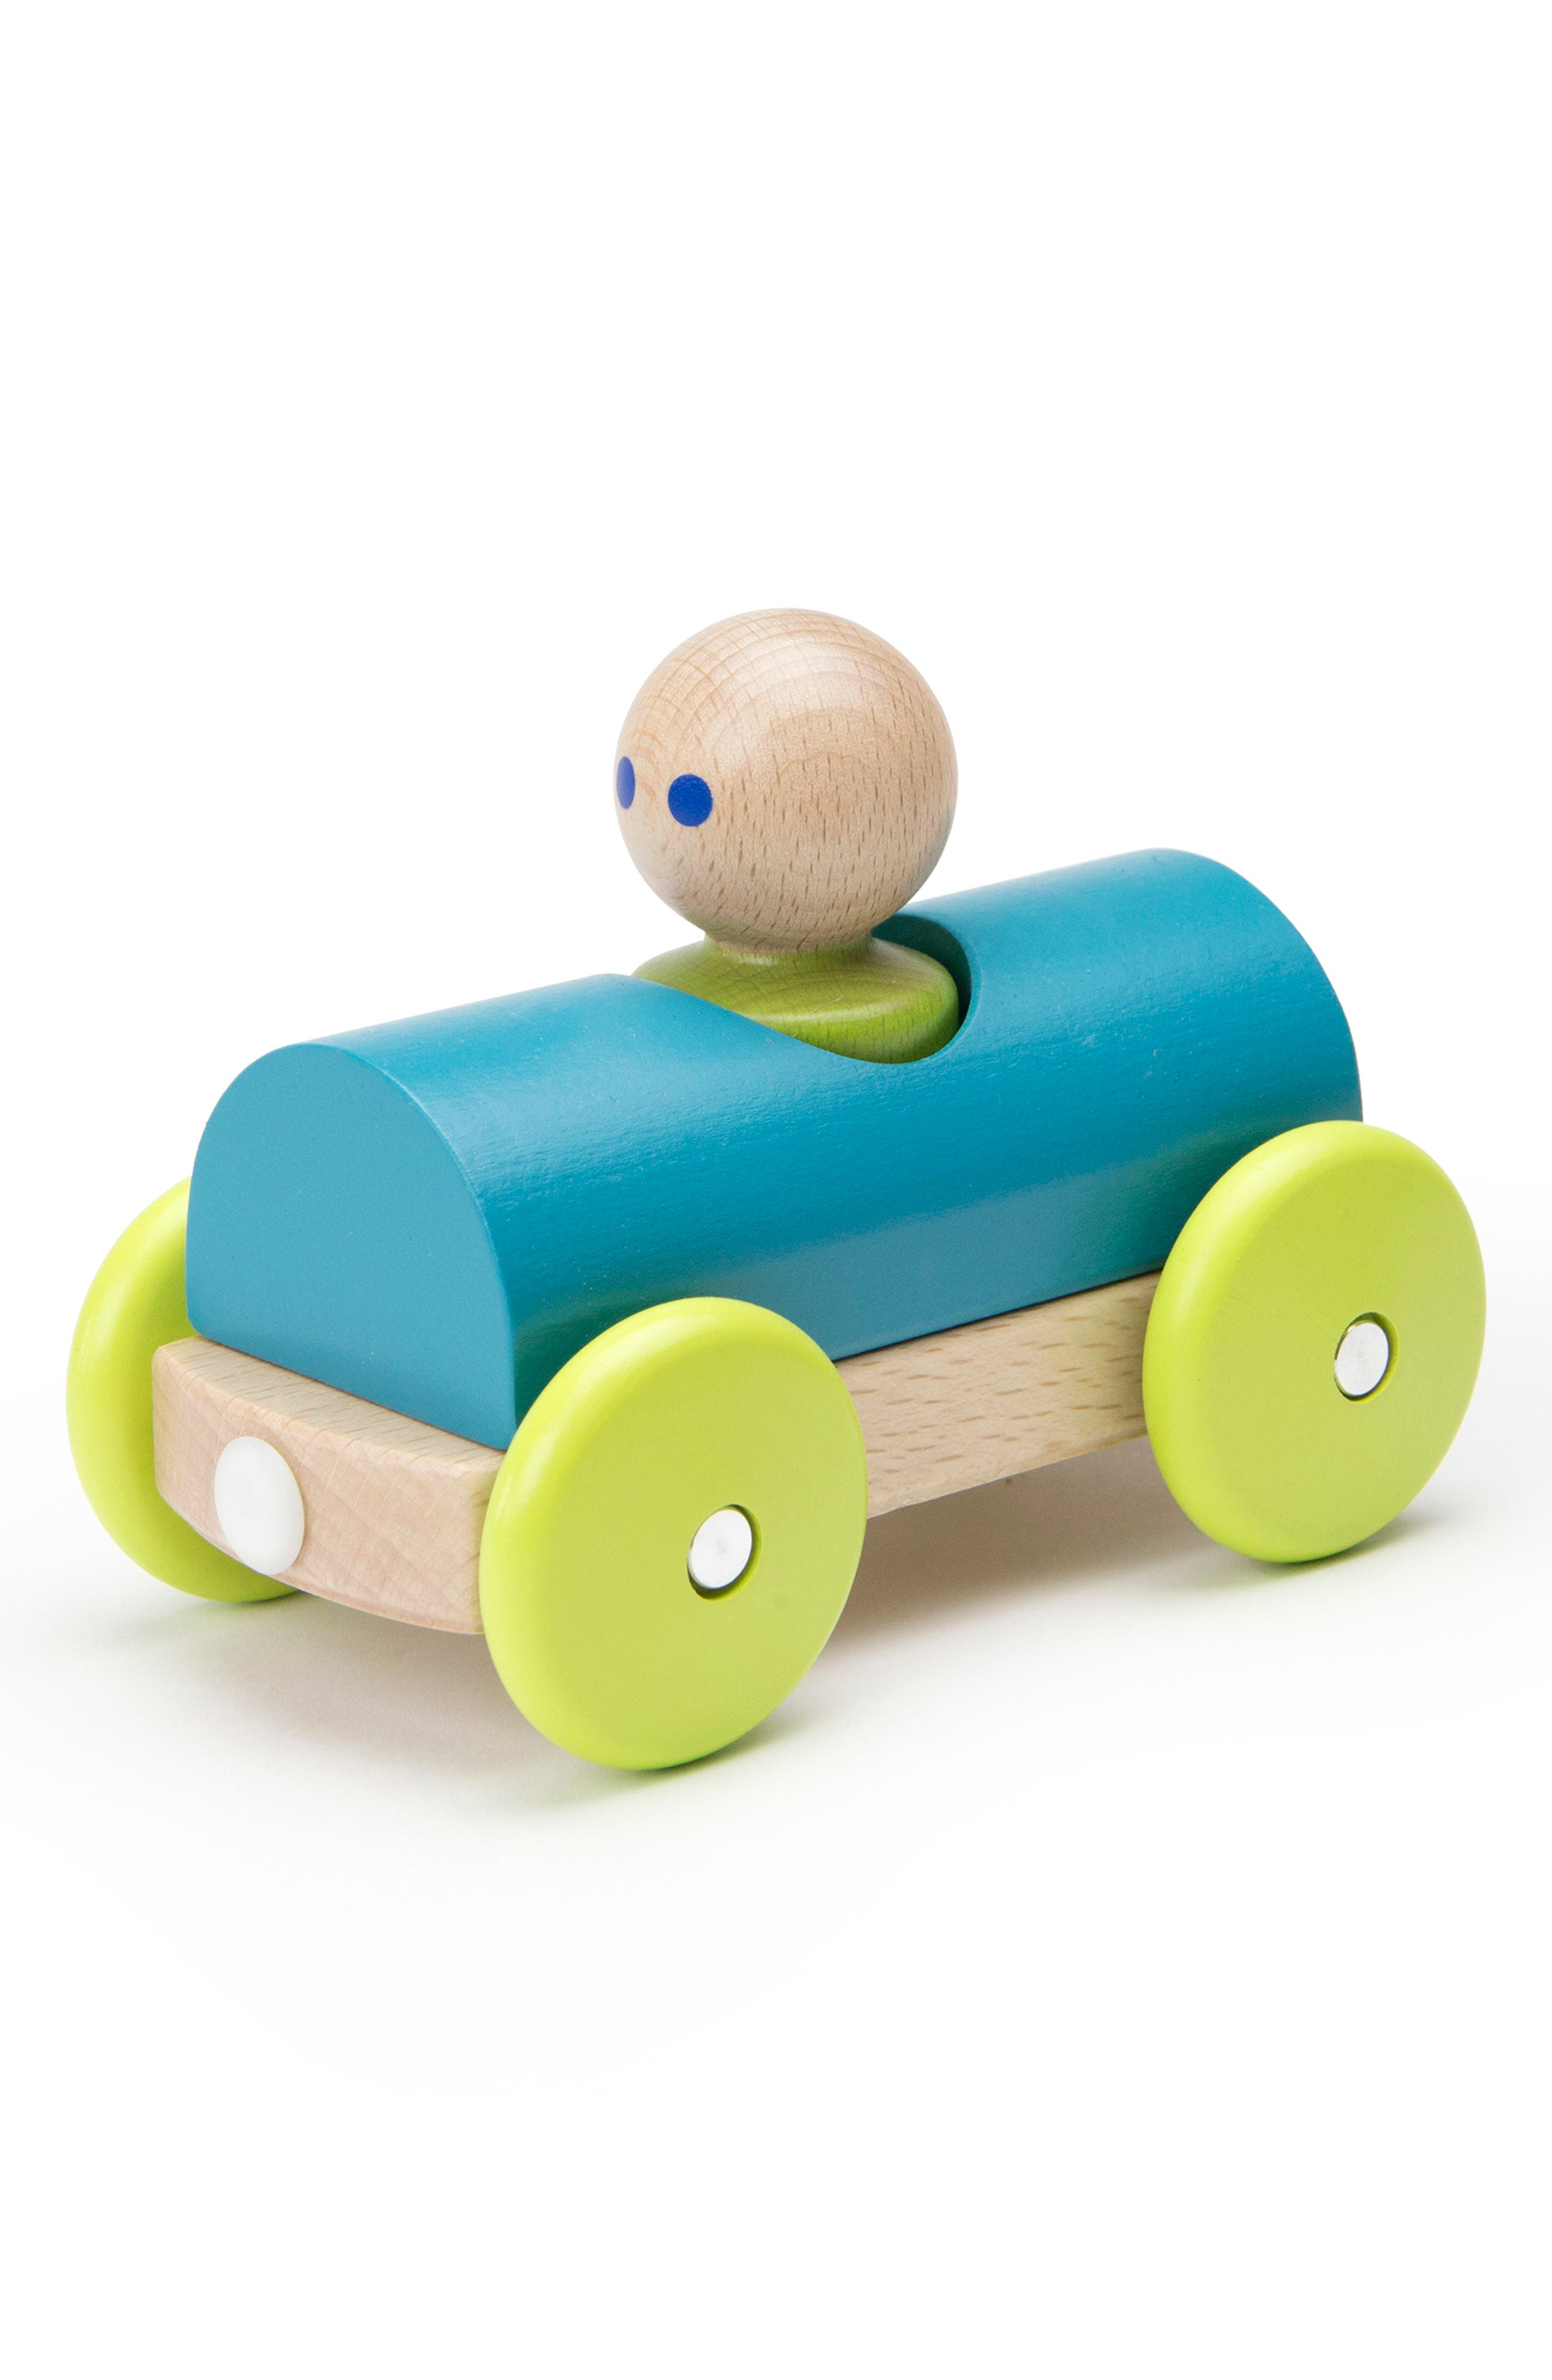 Half Pipe Magnetic Racer Toy,                         Main,                         color, 960